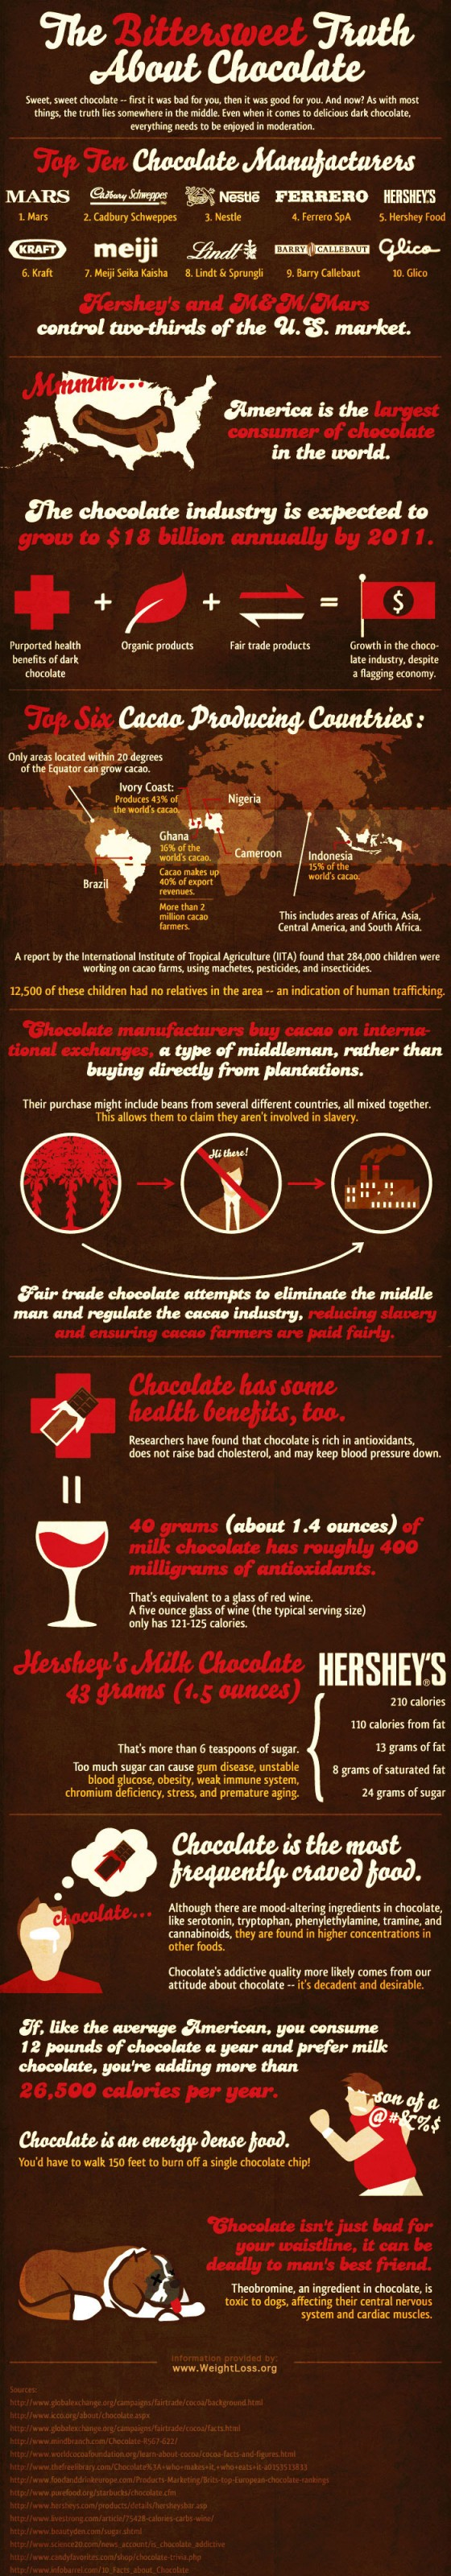 truth about chocolate health infographic1 560x3200